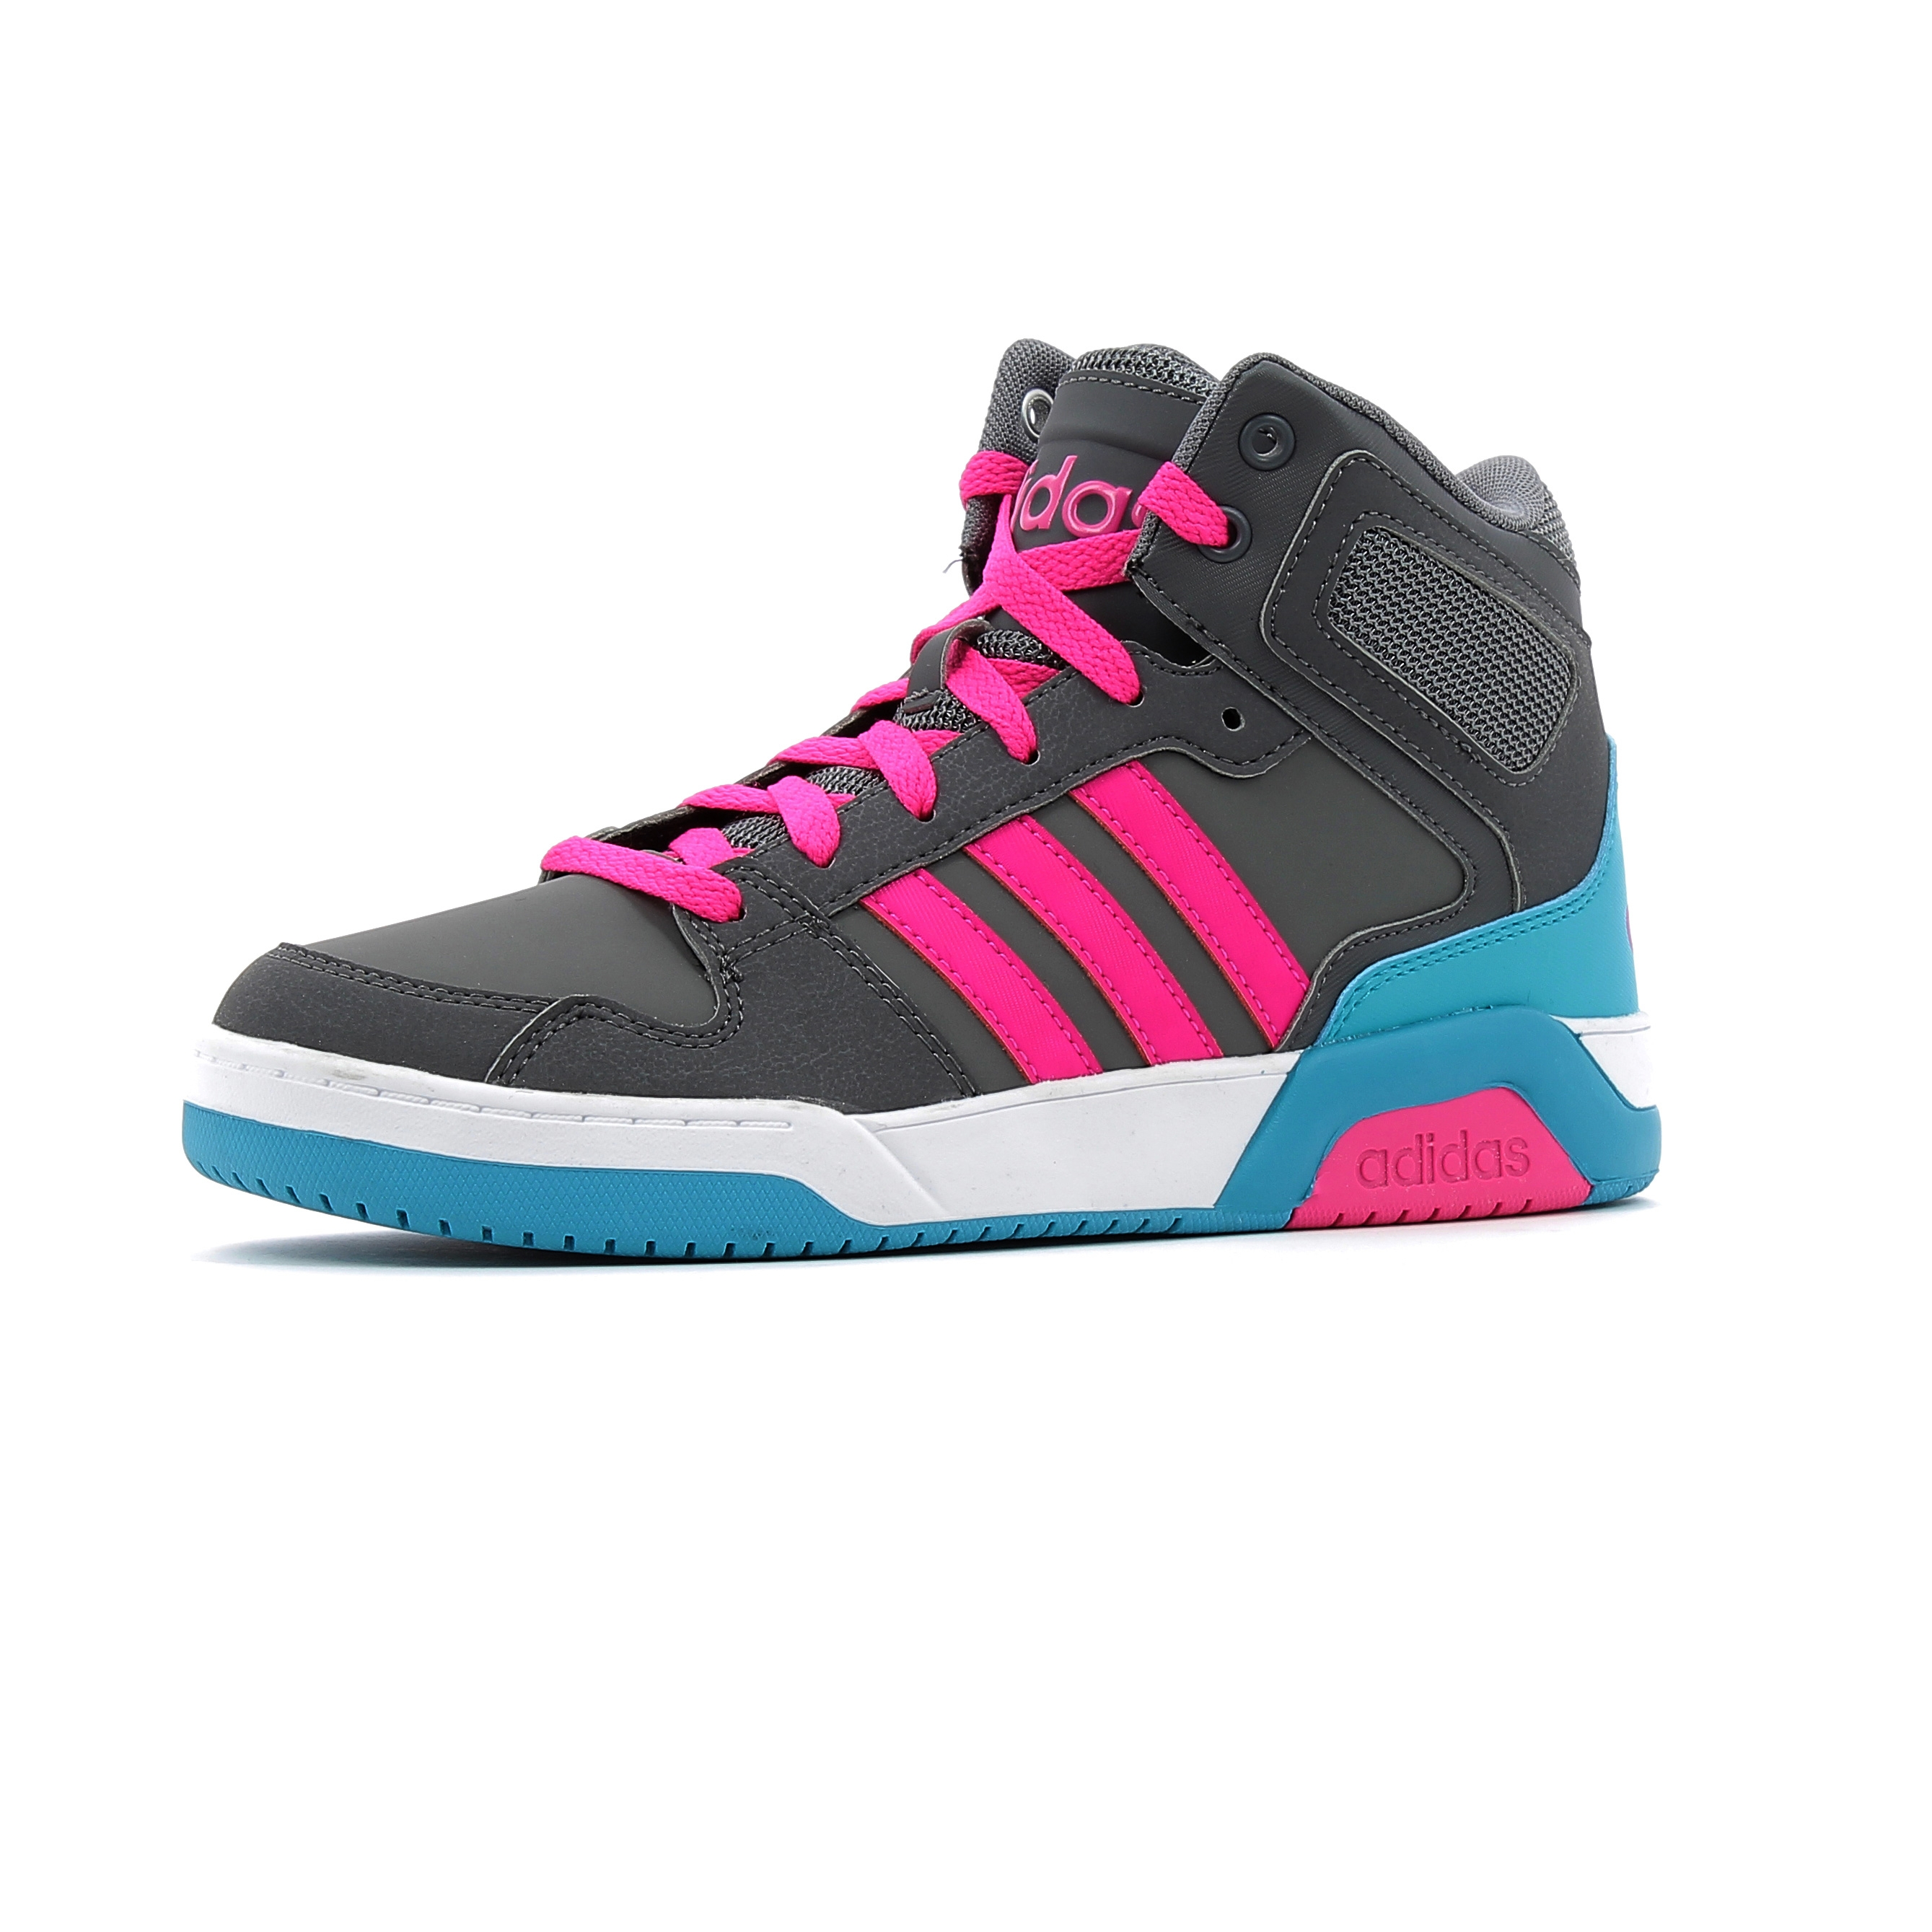 uk availability 3daf2 f5051 Baskets montantes Adidas Performance BB9TIS MID K